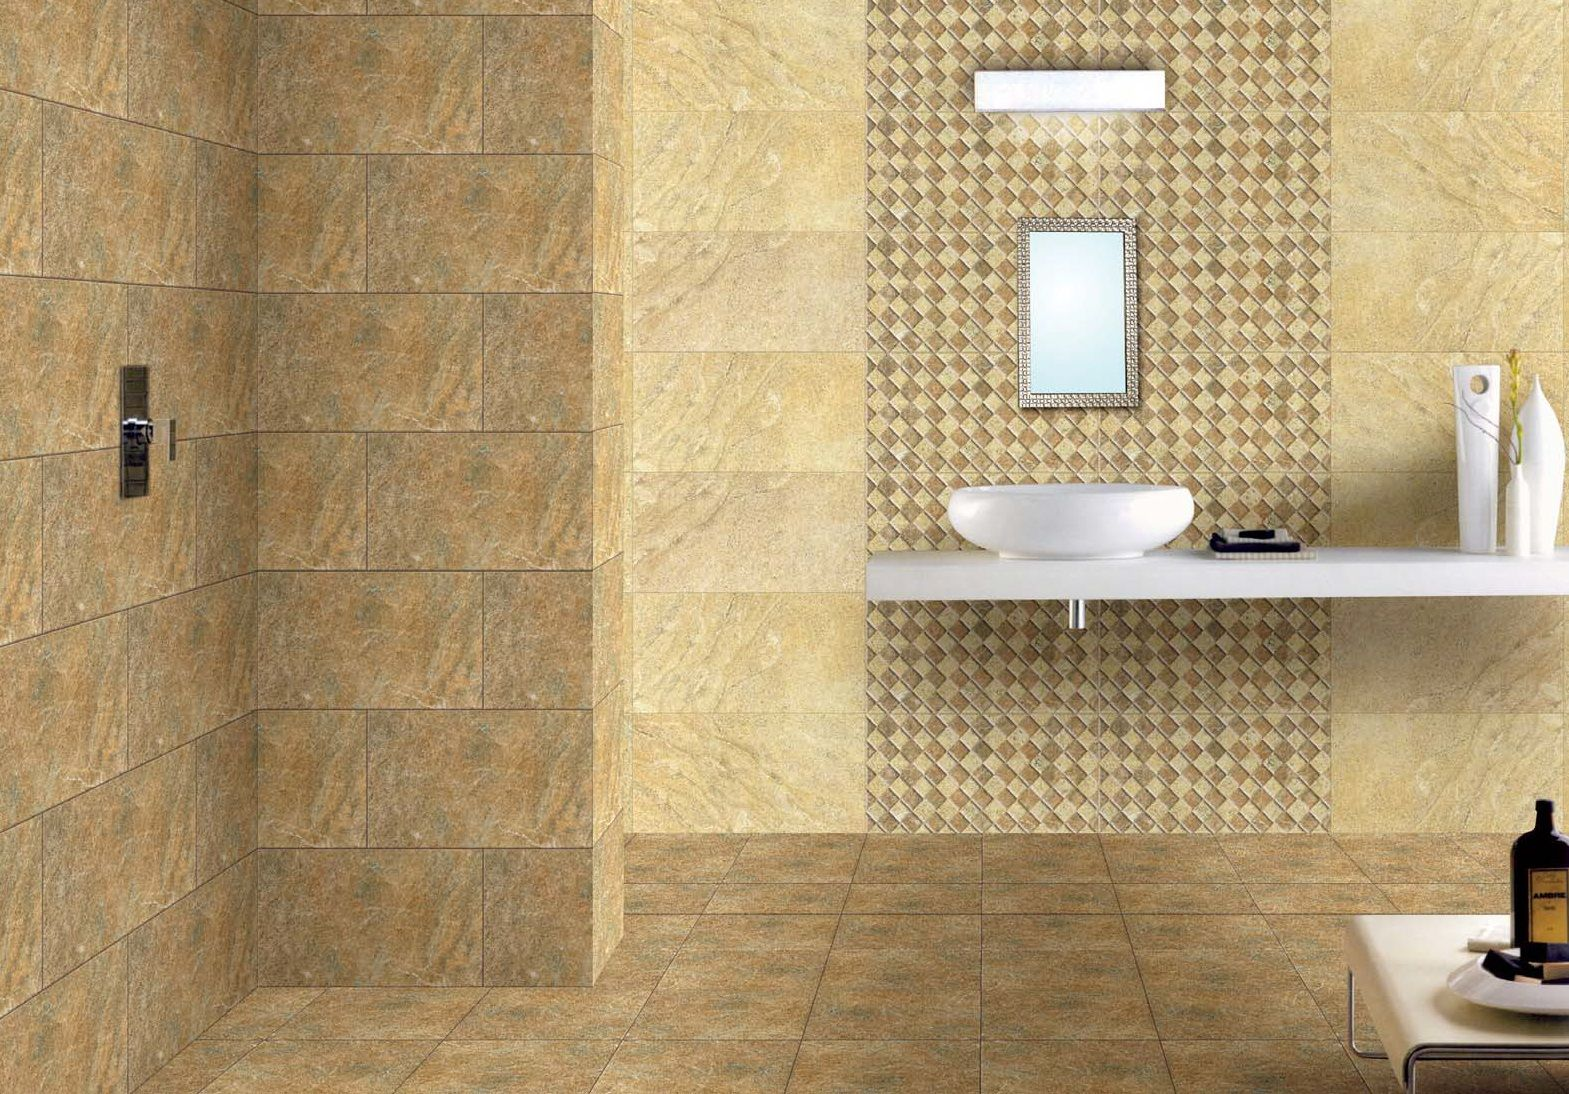 Latest posts under bathroom tile ideas ideas pinterest bathroom tile designs ideas model home decor for small bathrooms concept best free home design idea inspiration dailygadgetfo Image collections